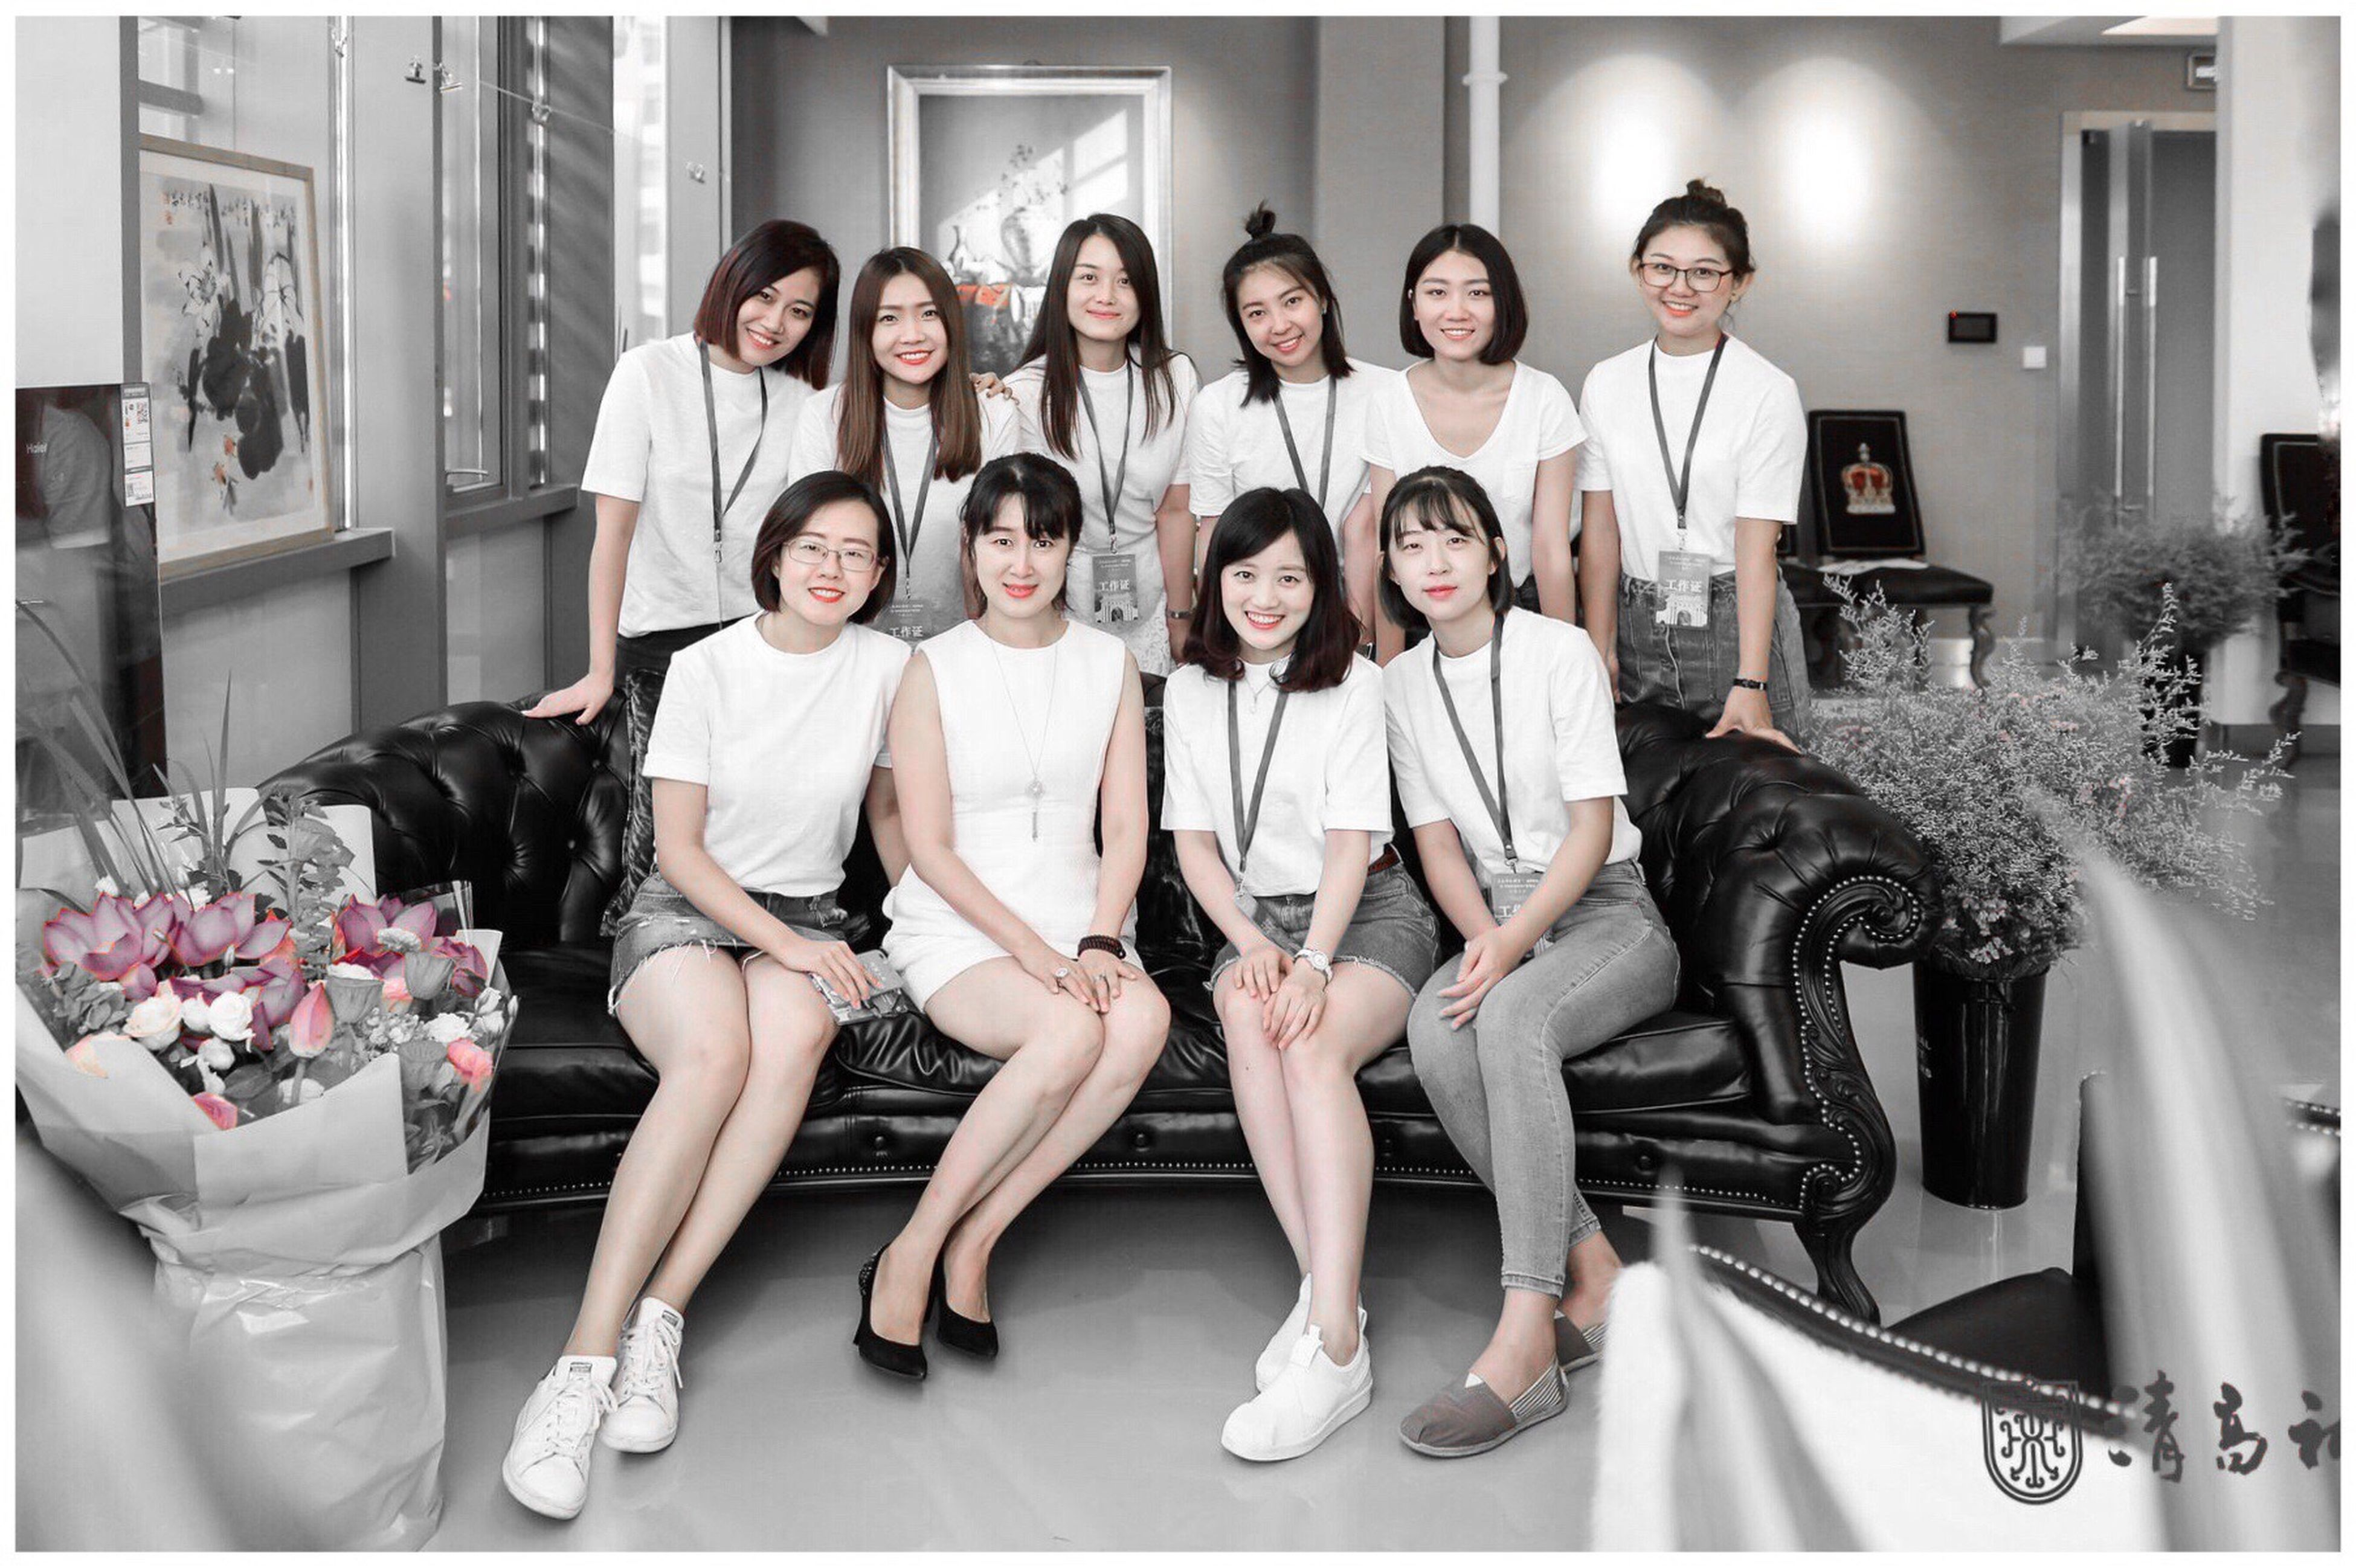 looking at camera, portrait, smiling, wellbeing, front view, indoors, cheerful, happiness, fashion, women, enjoyment, men, full length, togetherness, standing, body care, beautiful woman, young adult, lifestyles, large group of people, beauty, well-dressed, young women, health club, adult, day, people, adults only